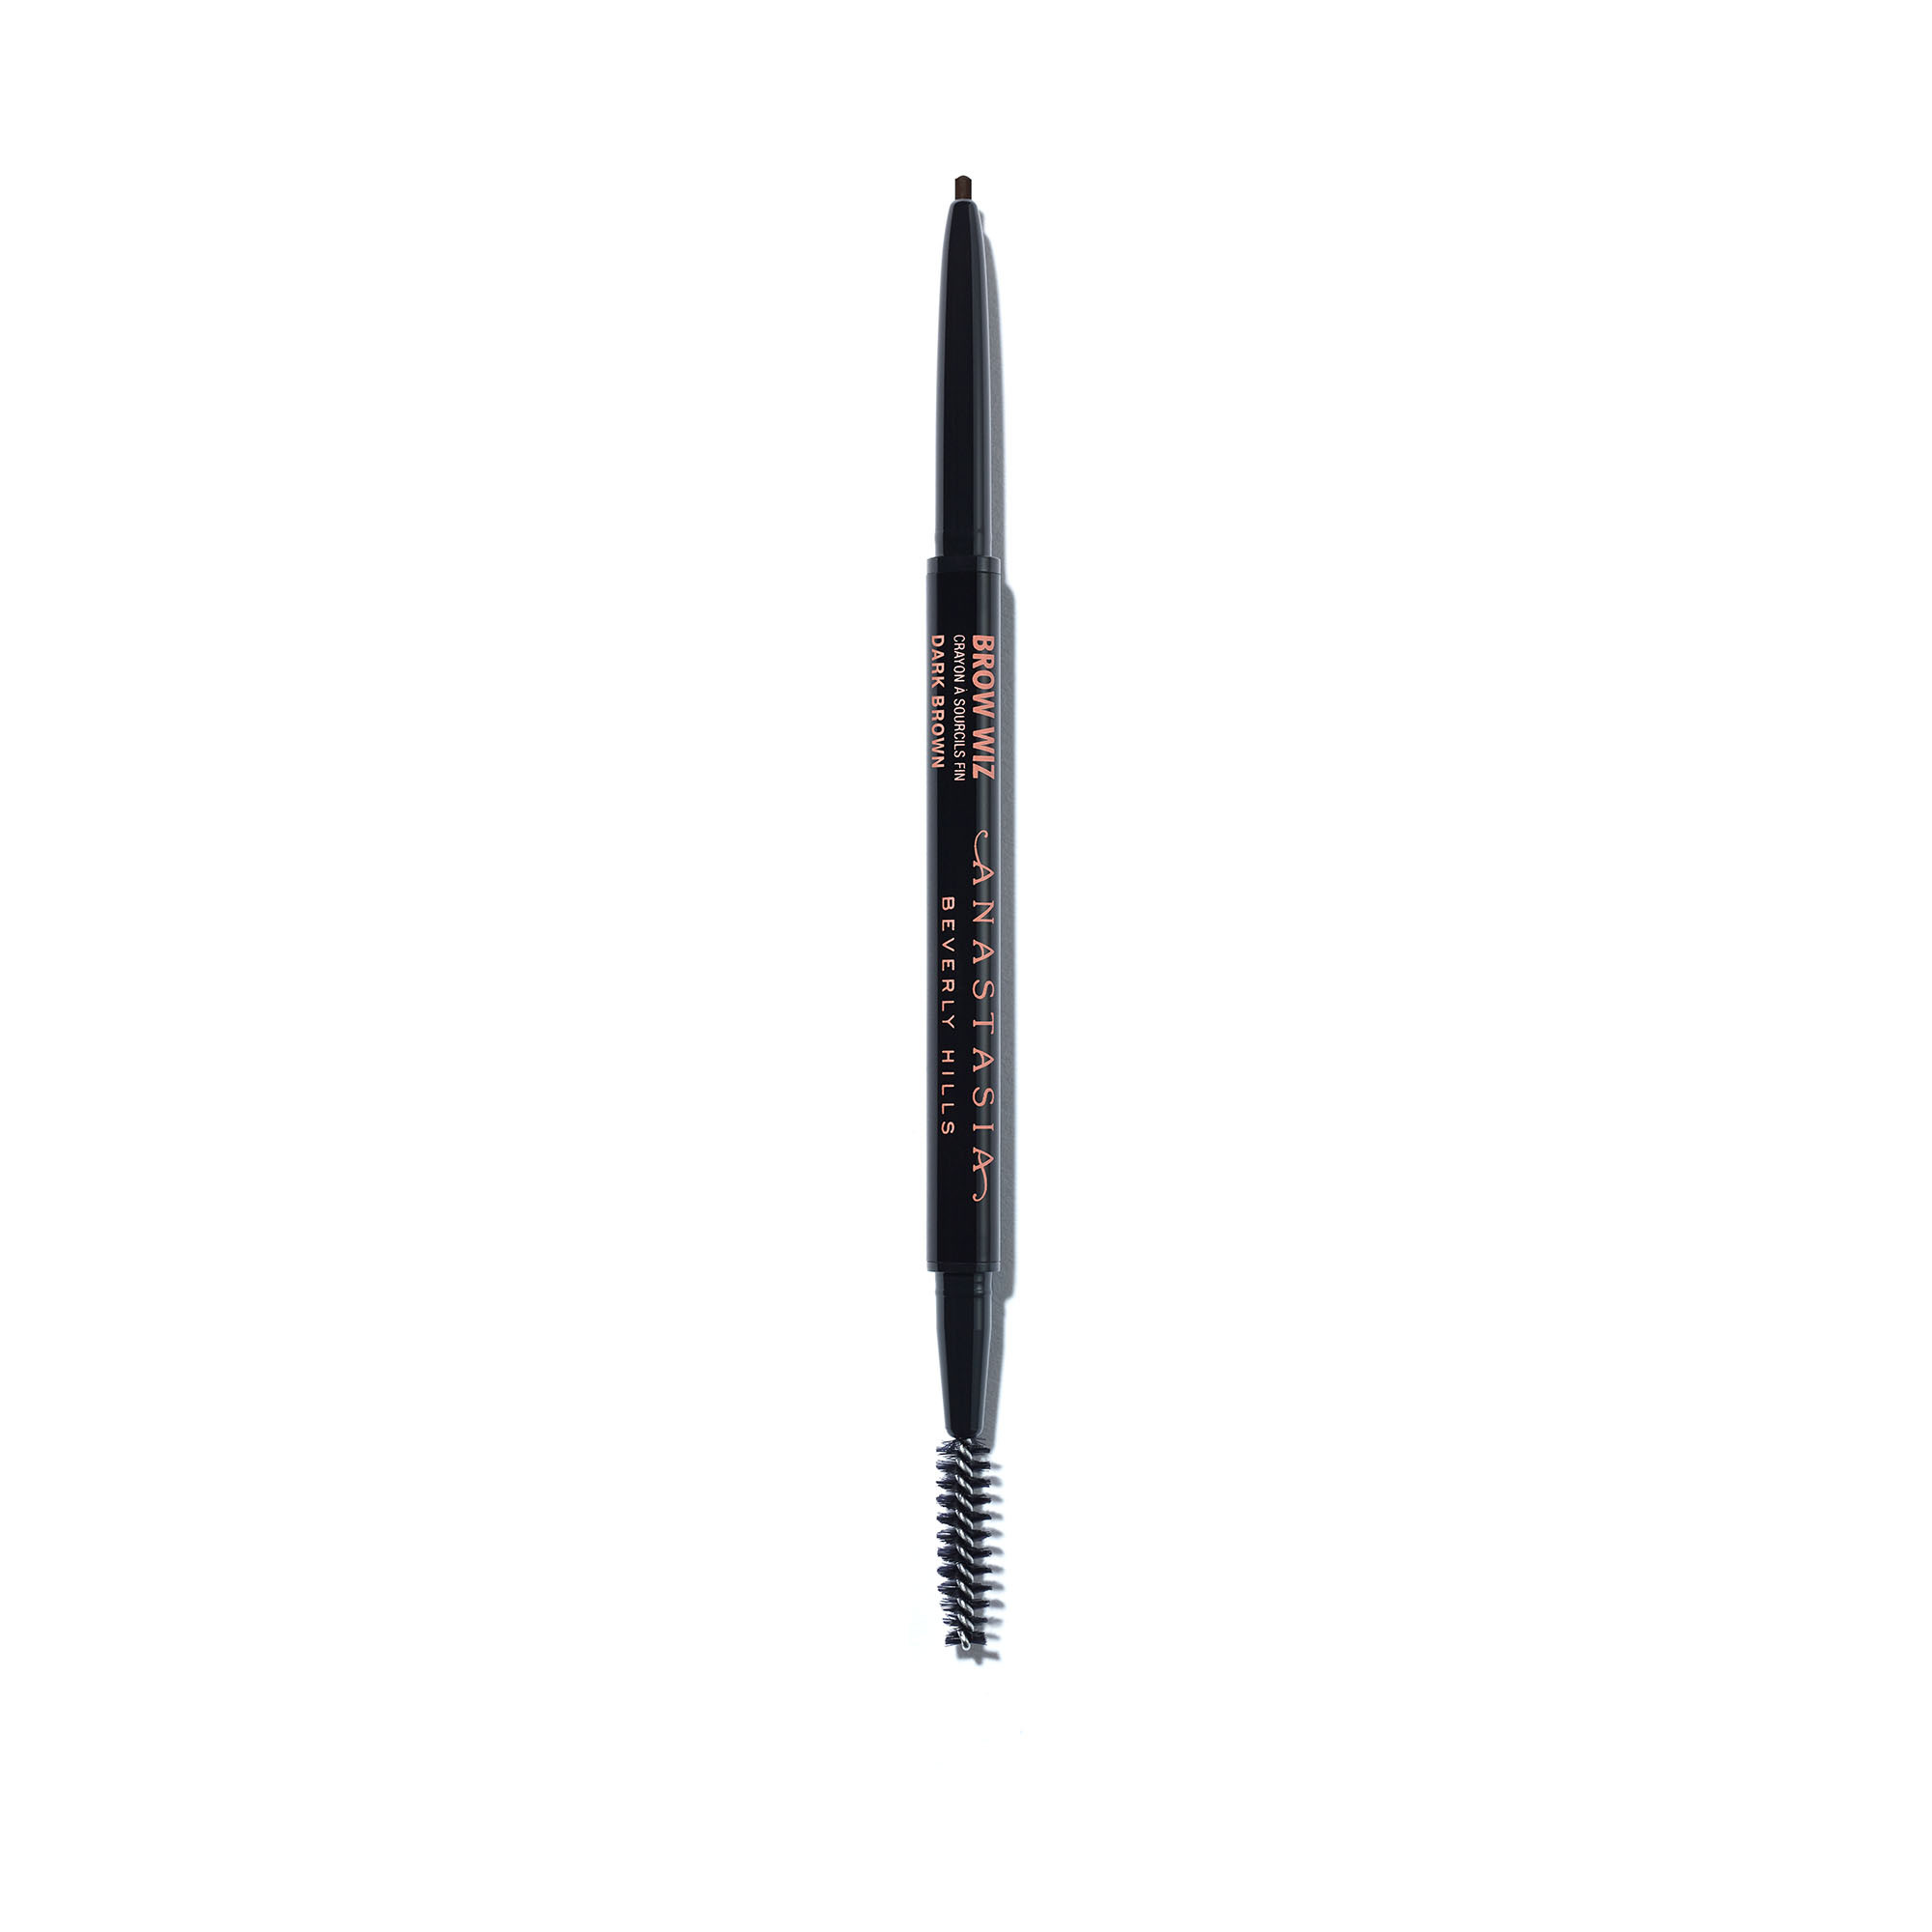 Anastasia Beverly Hill's Brow Wiz